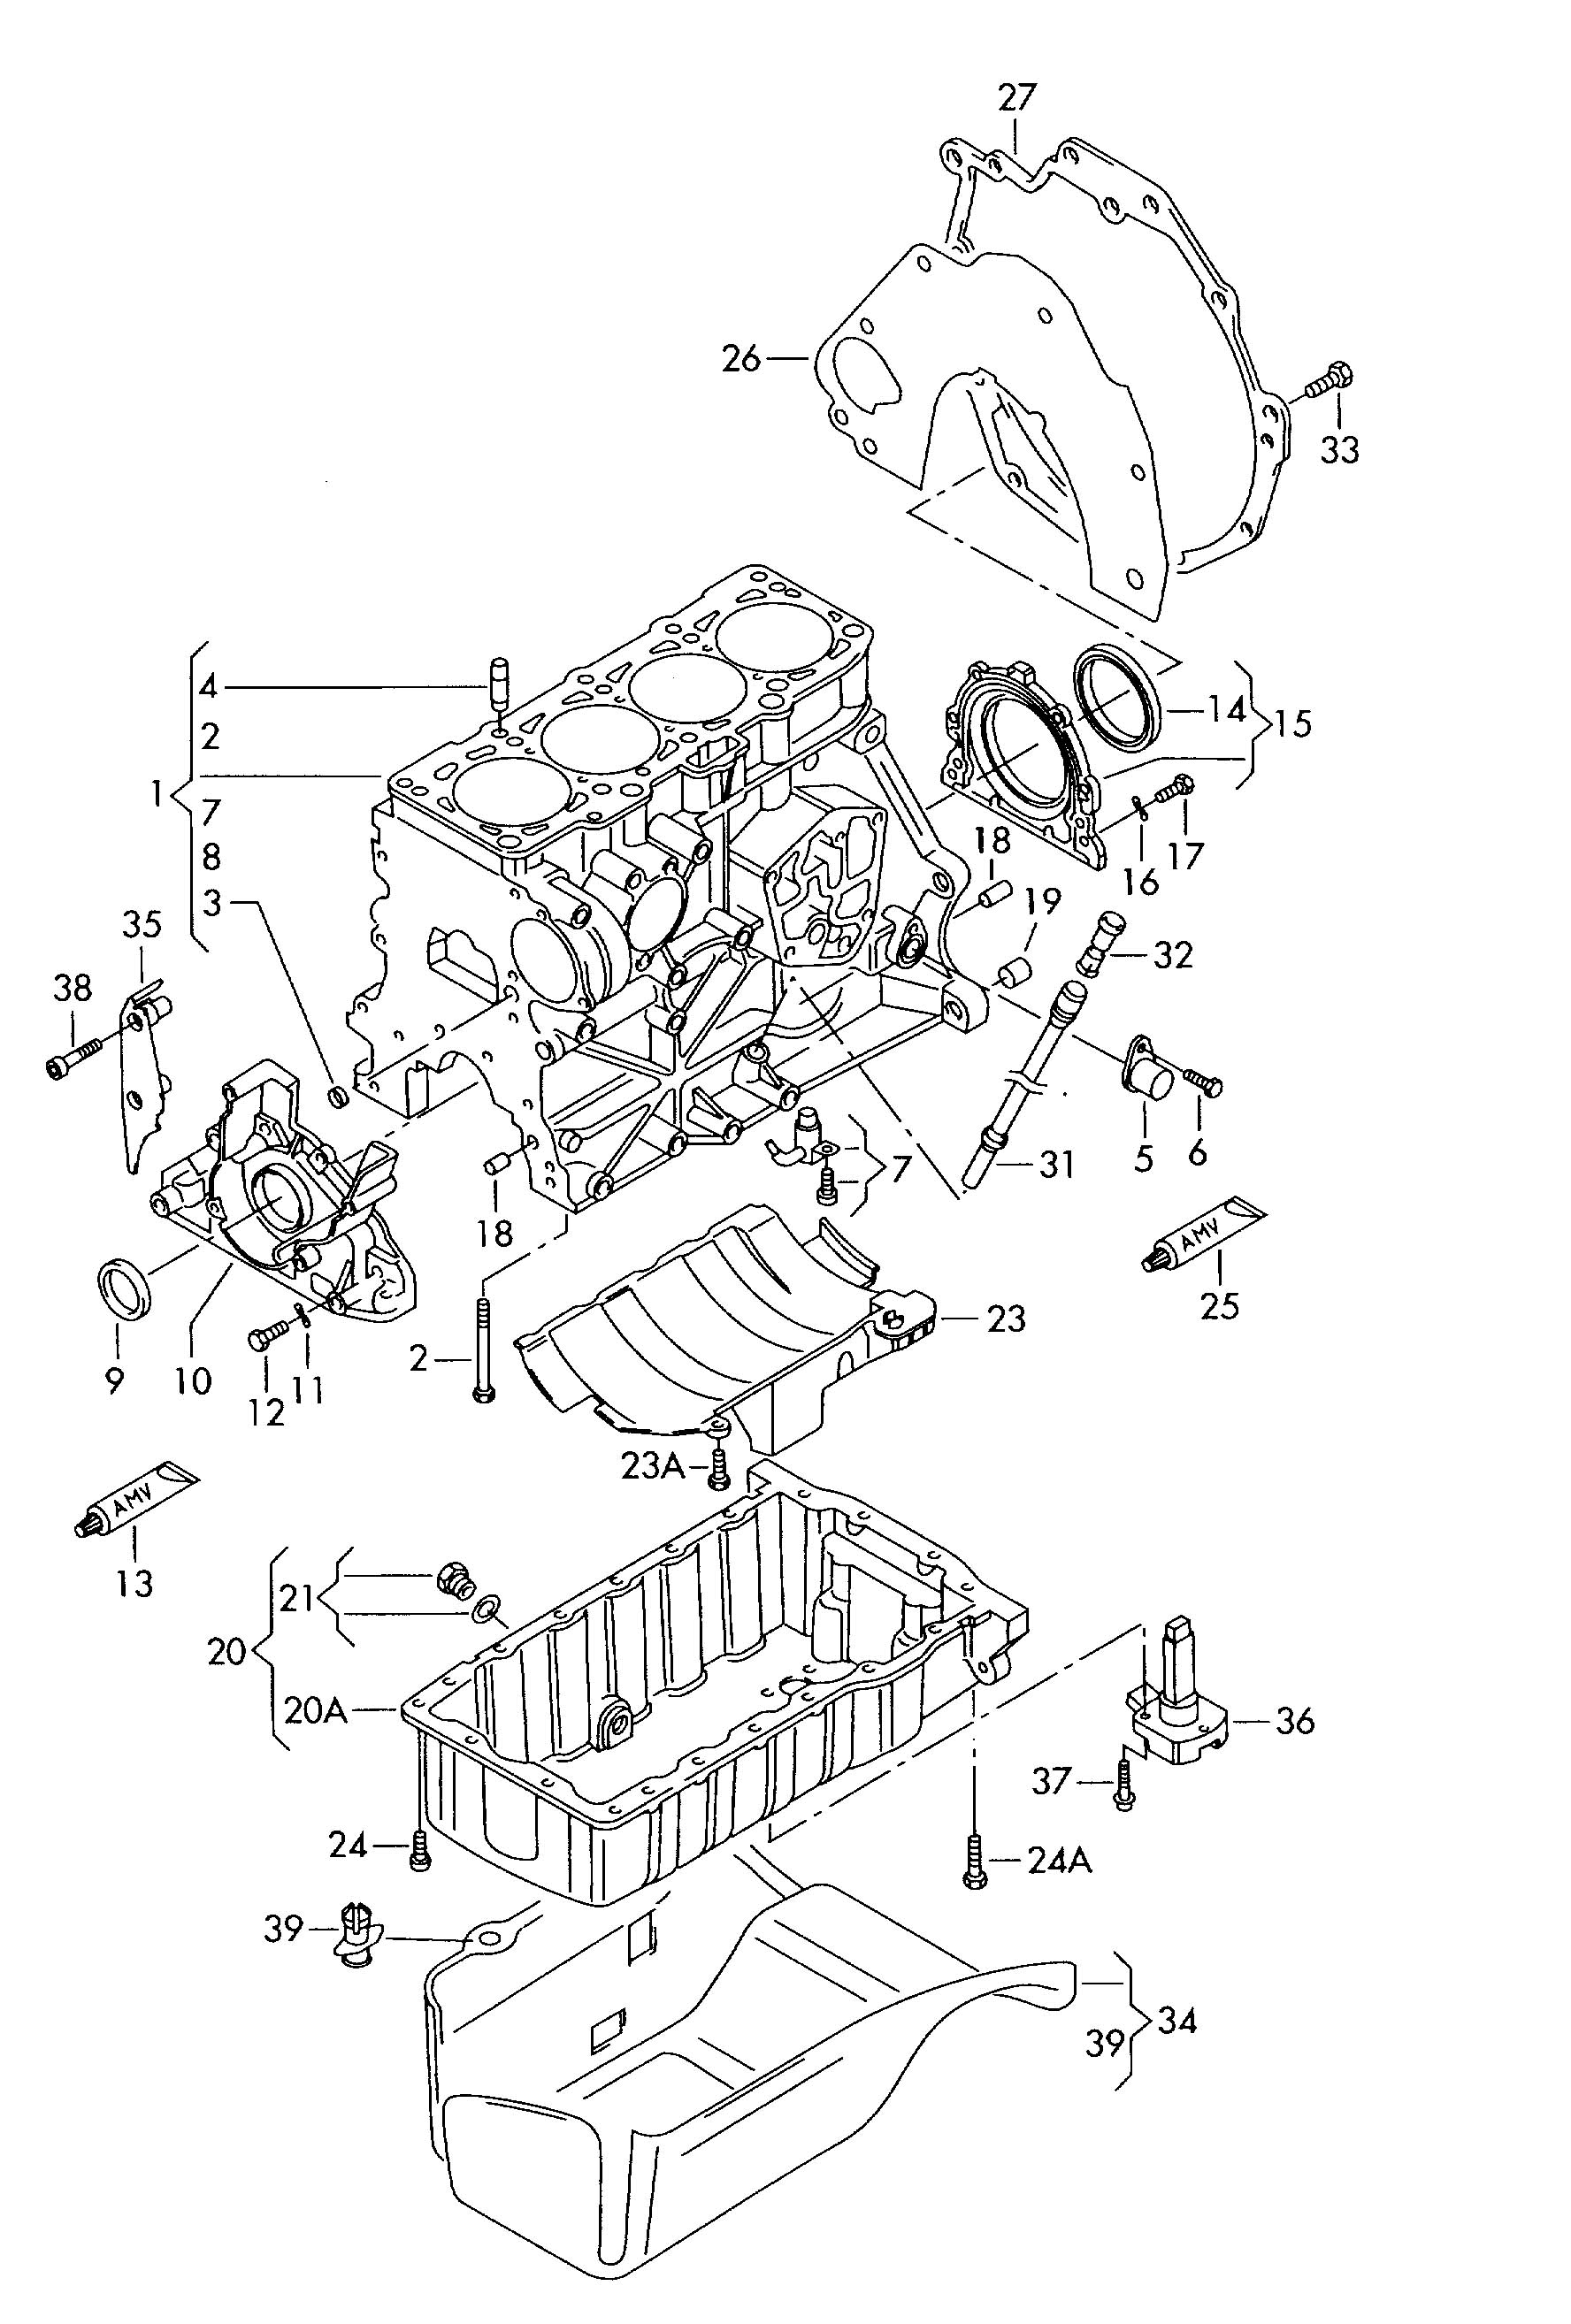 Volkswagen Passat Engine Diagram